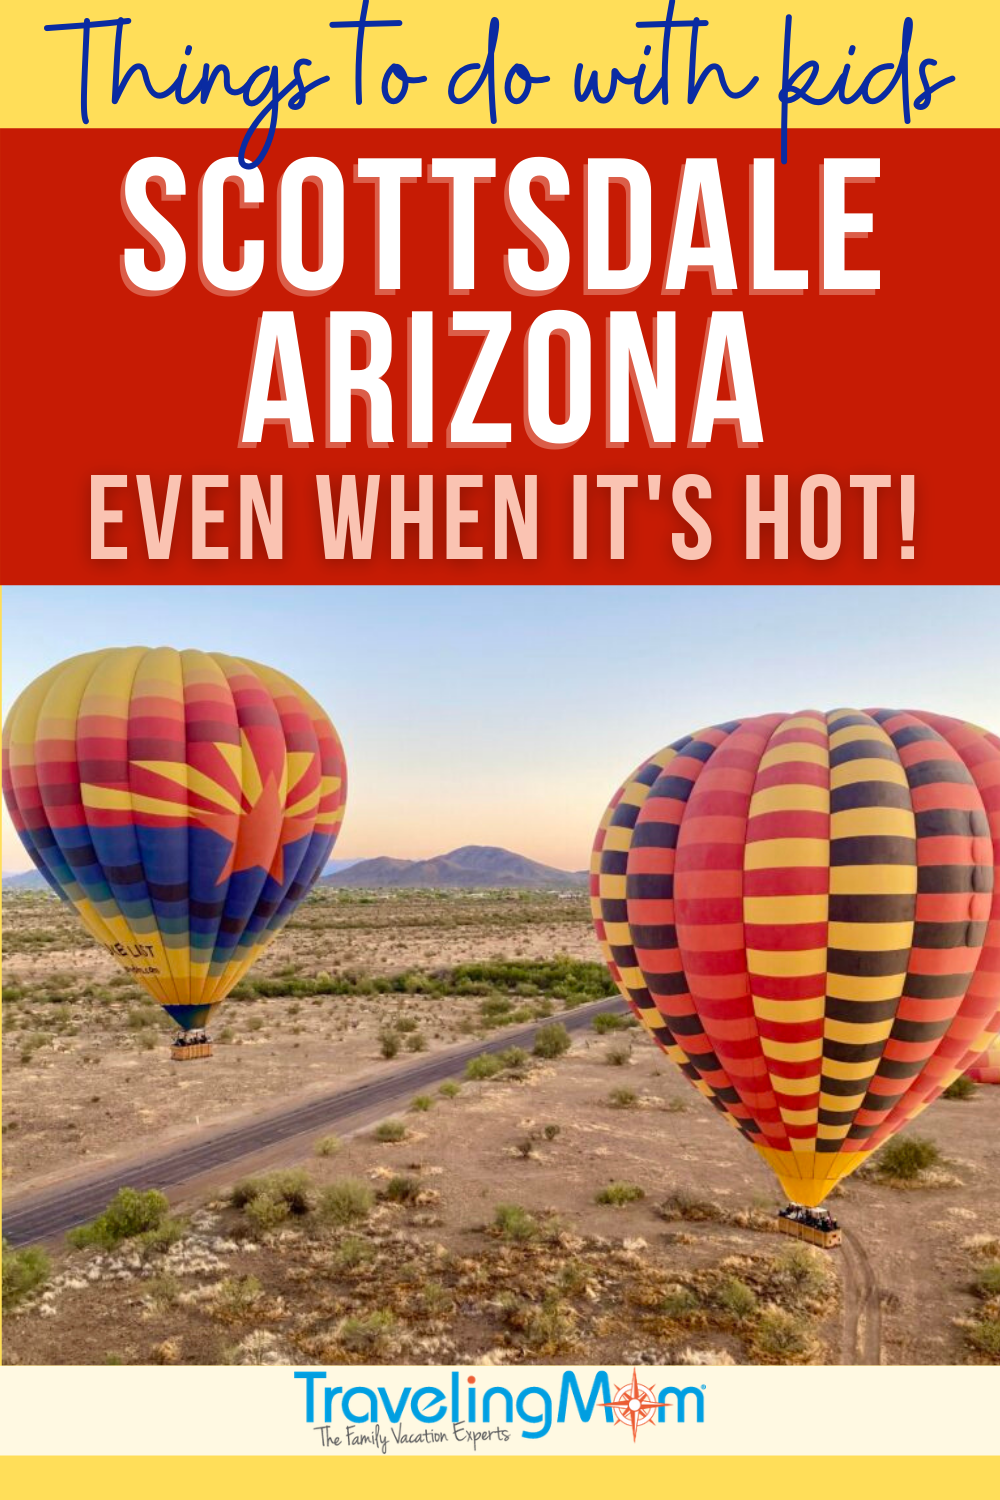 pin image with text reading things to do with kids scottsdale arizona even when it's hot picture of hot air ballons against desert landscape